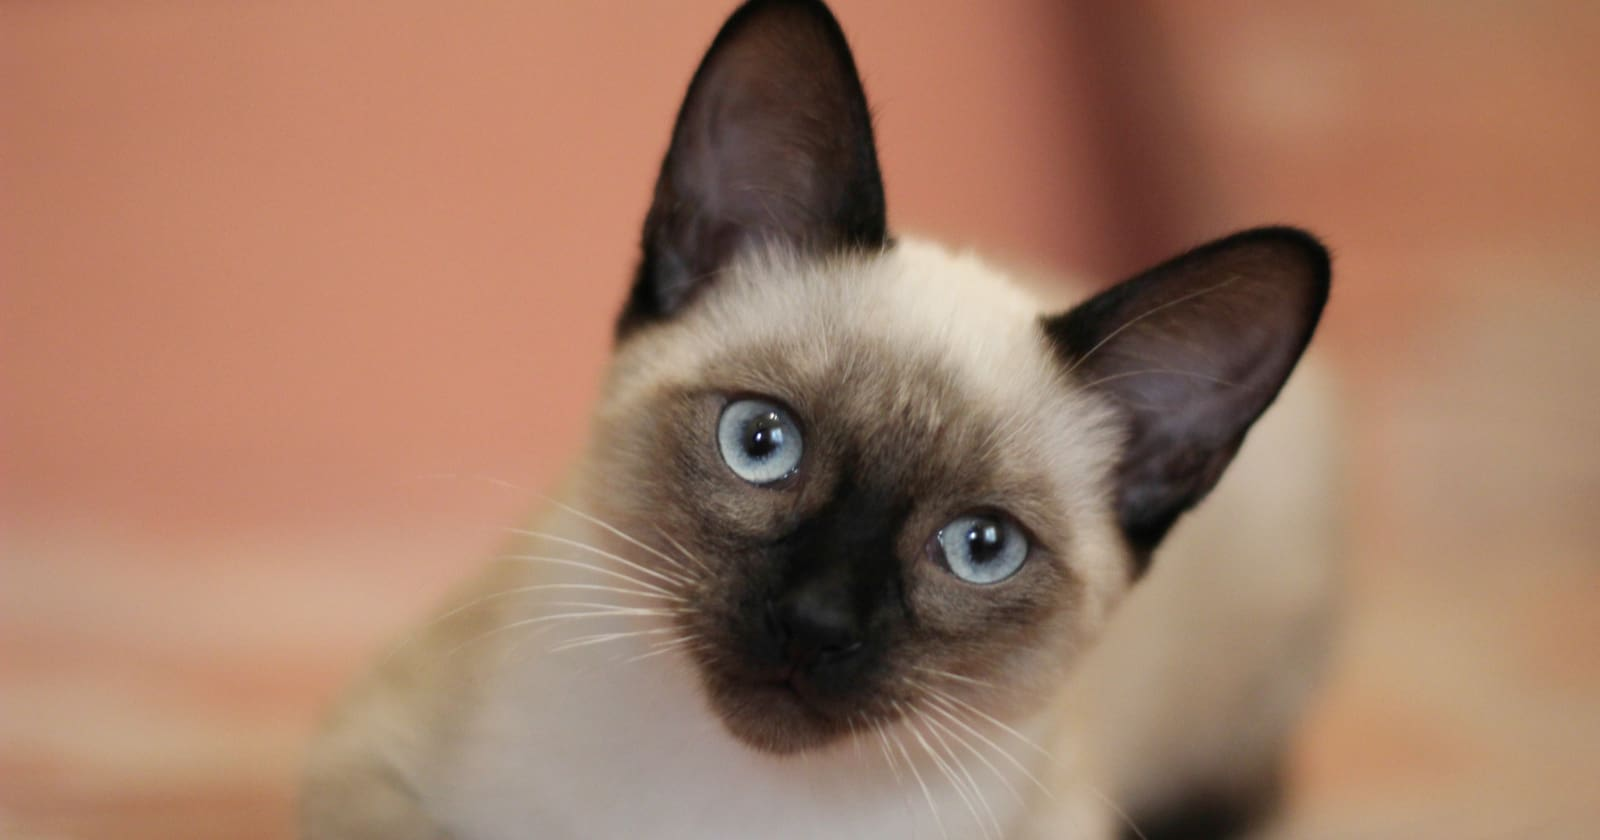 If you're searching for some of the most beautiful Siamese cat names, stick around! We're sharing our top 50 favorites! Take a look!